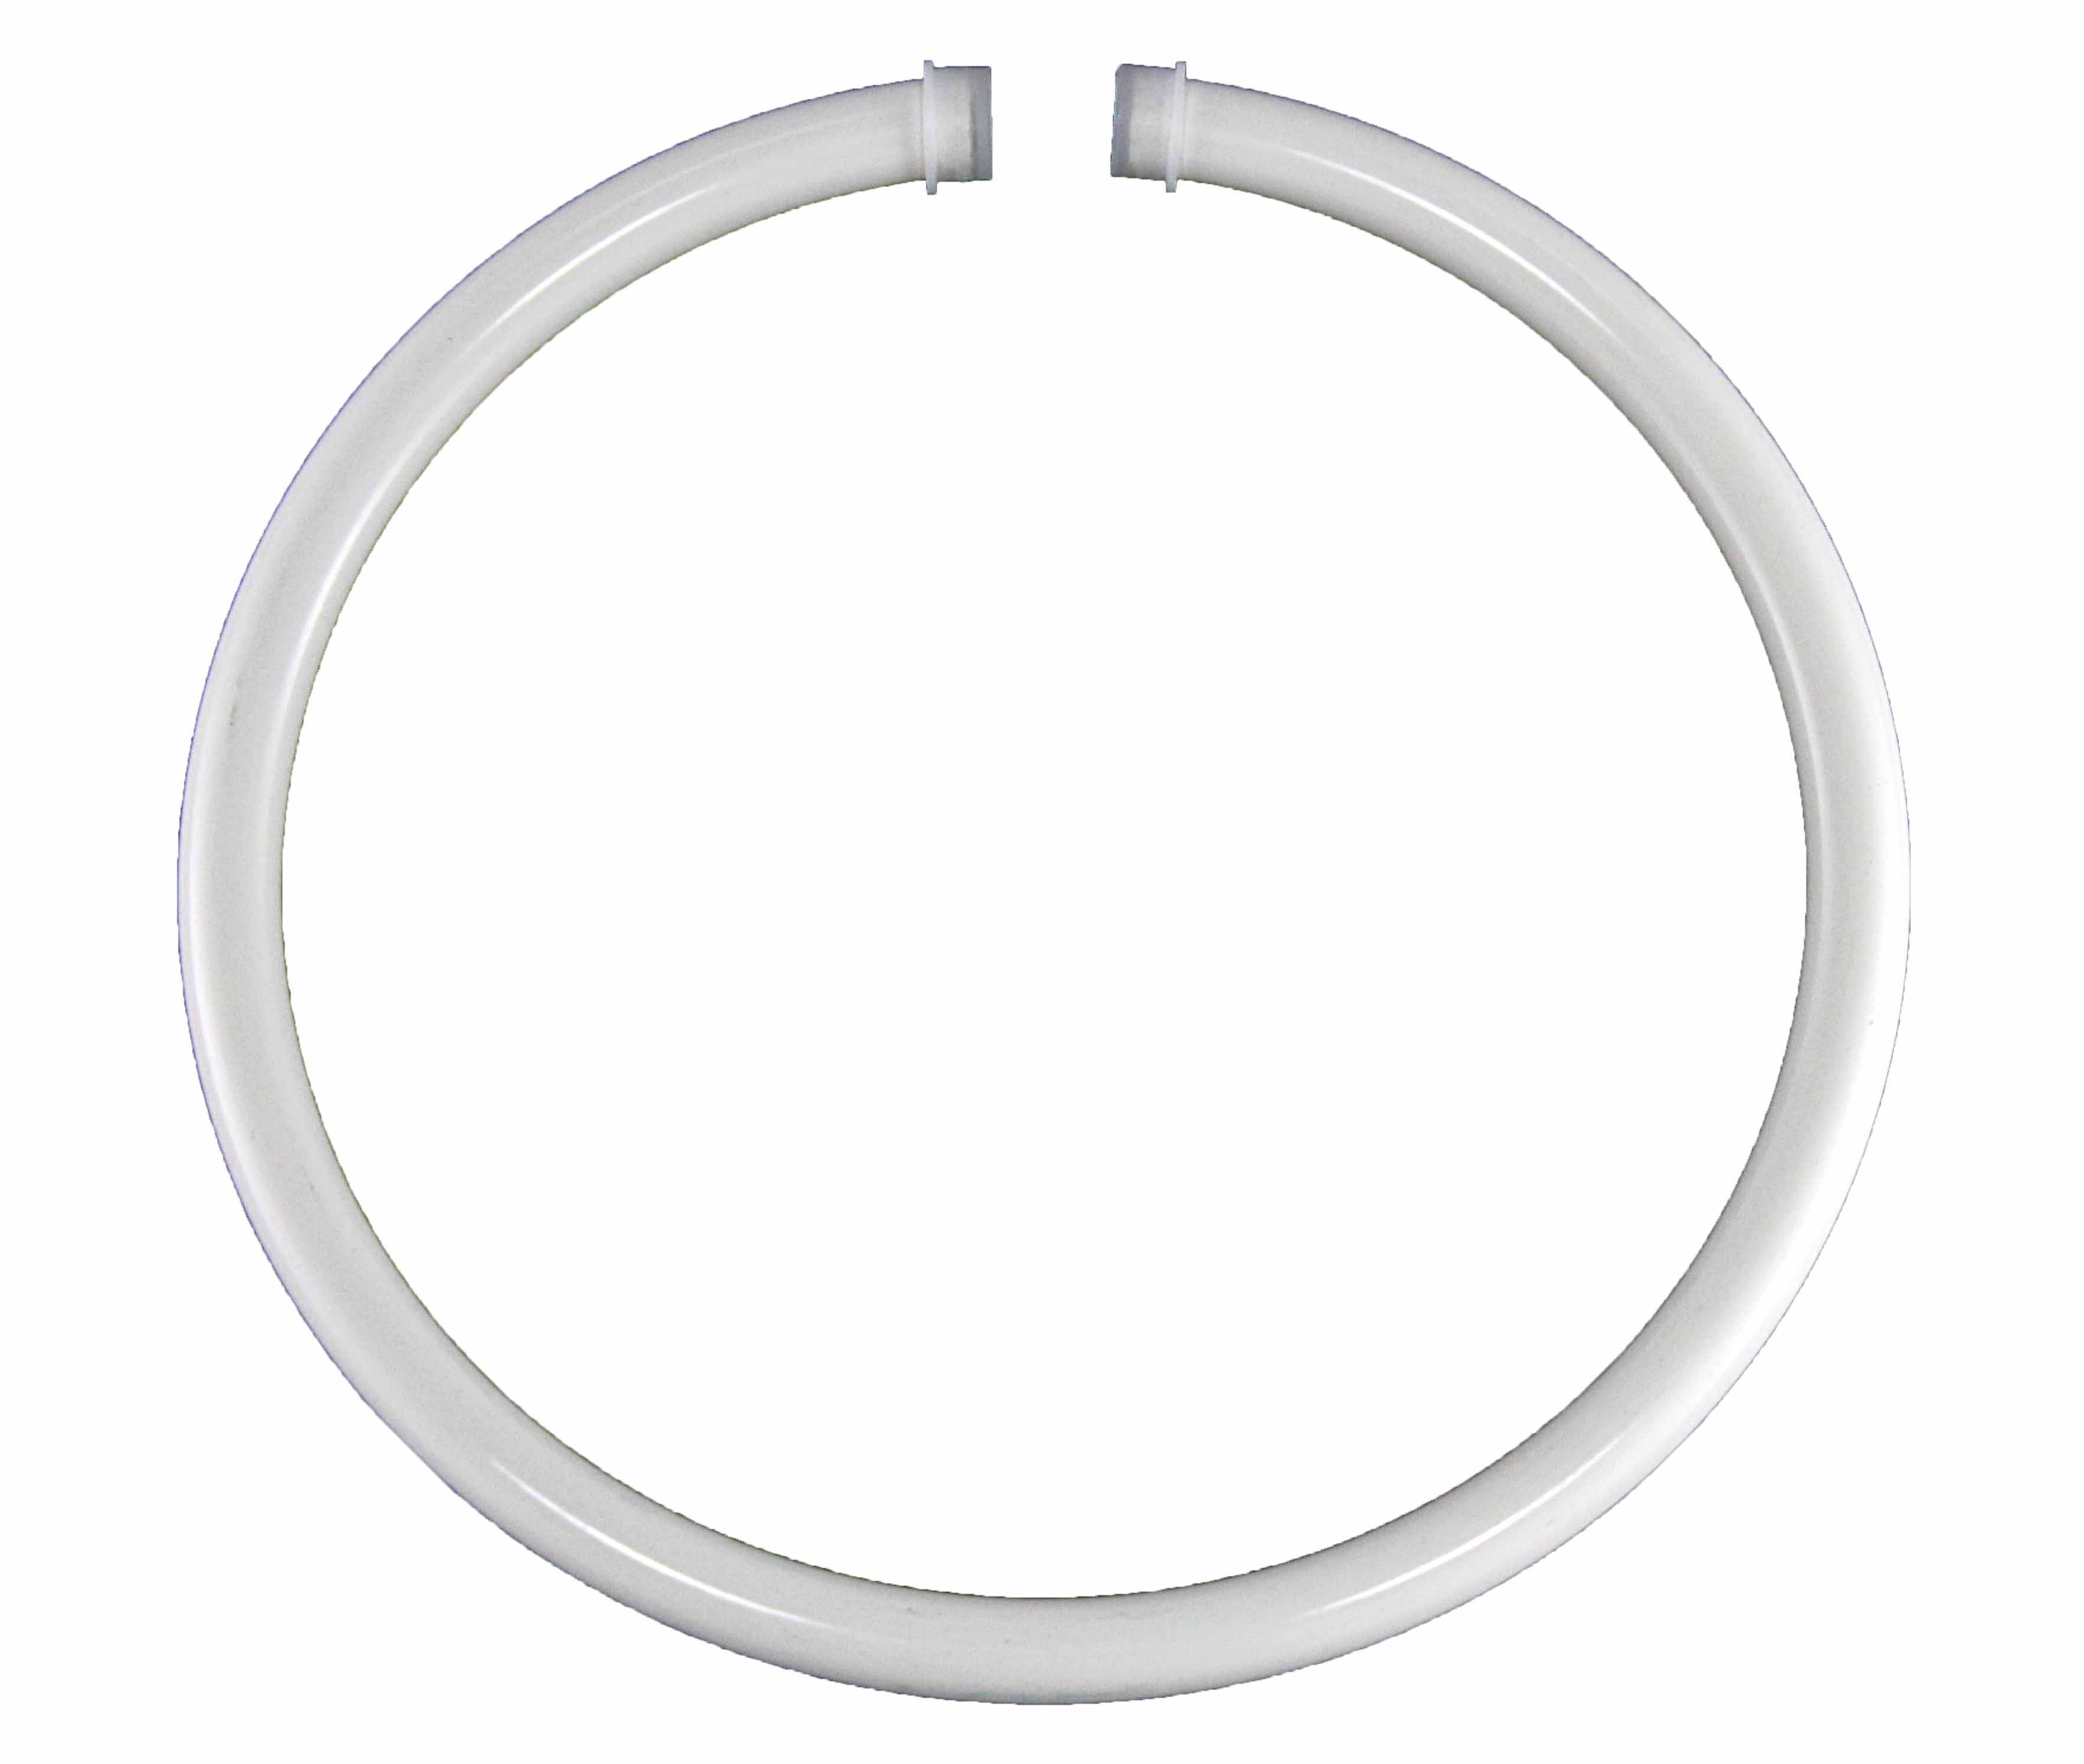 Towel Ring Replacement 6 Inches Round Plum Street Pottery Towel Rings Towel Bathroom Towels